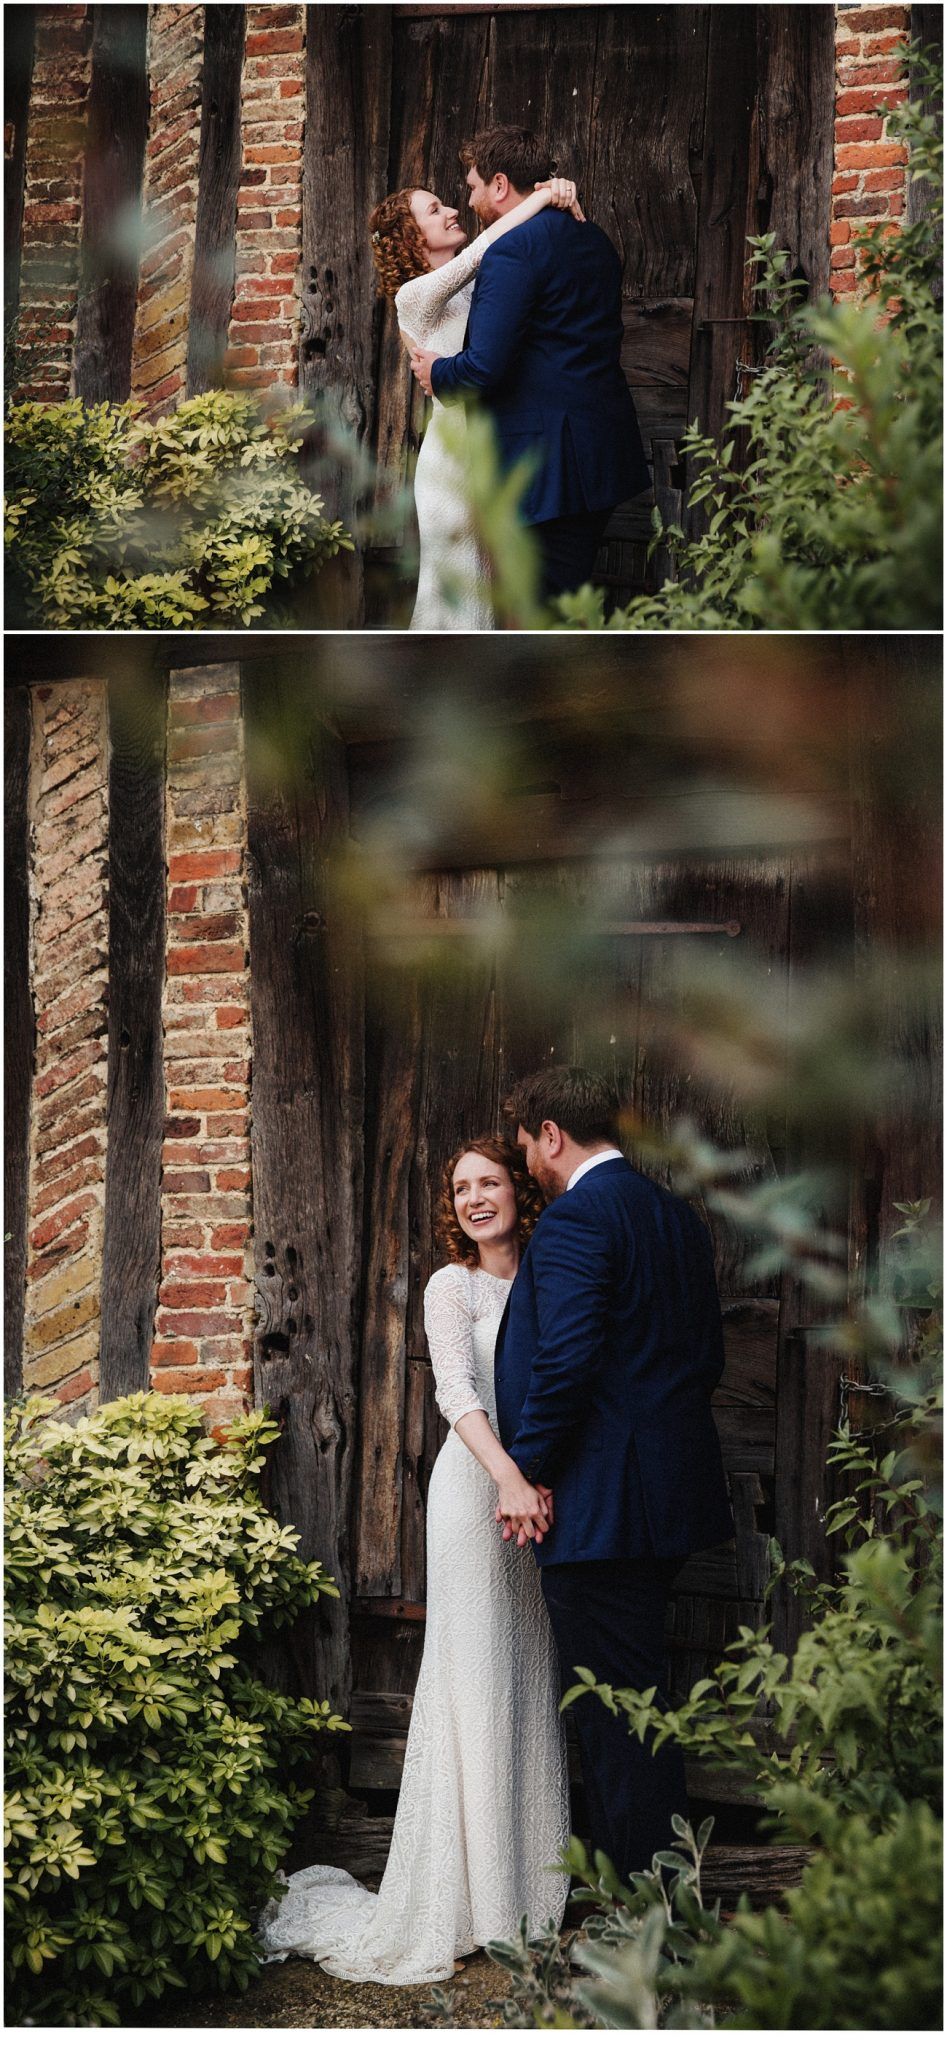 Bride and groom hold each other and laugh by the medieval barn